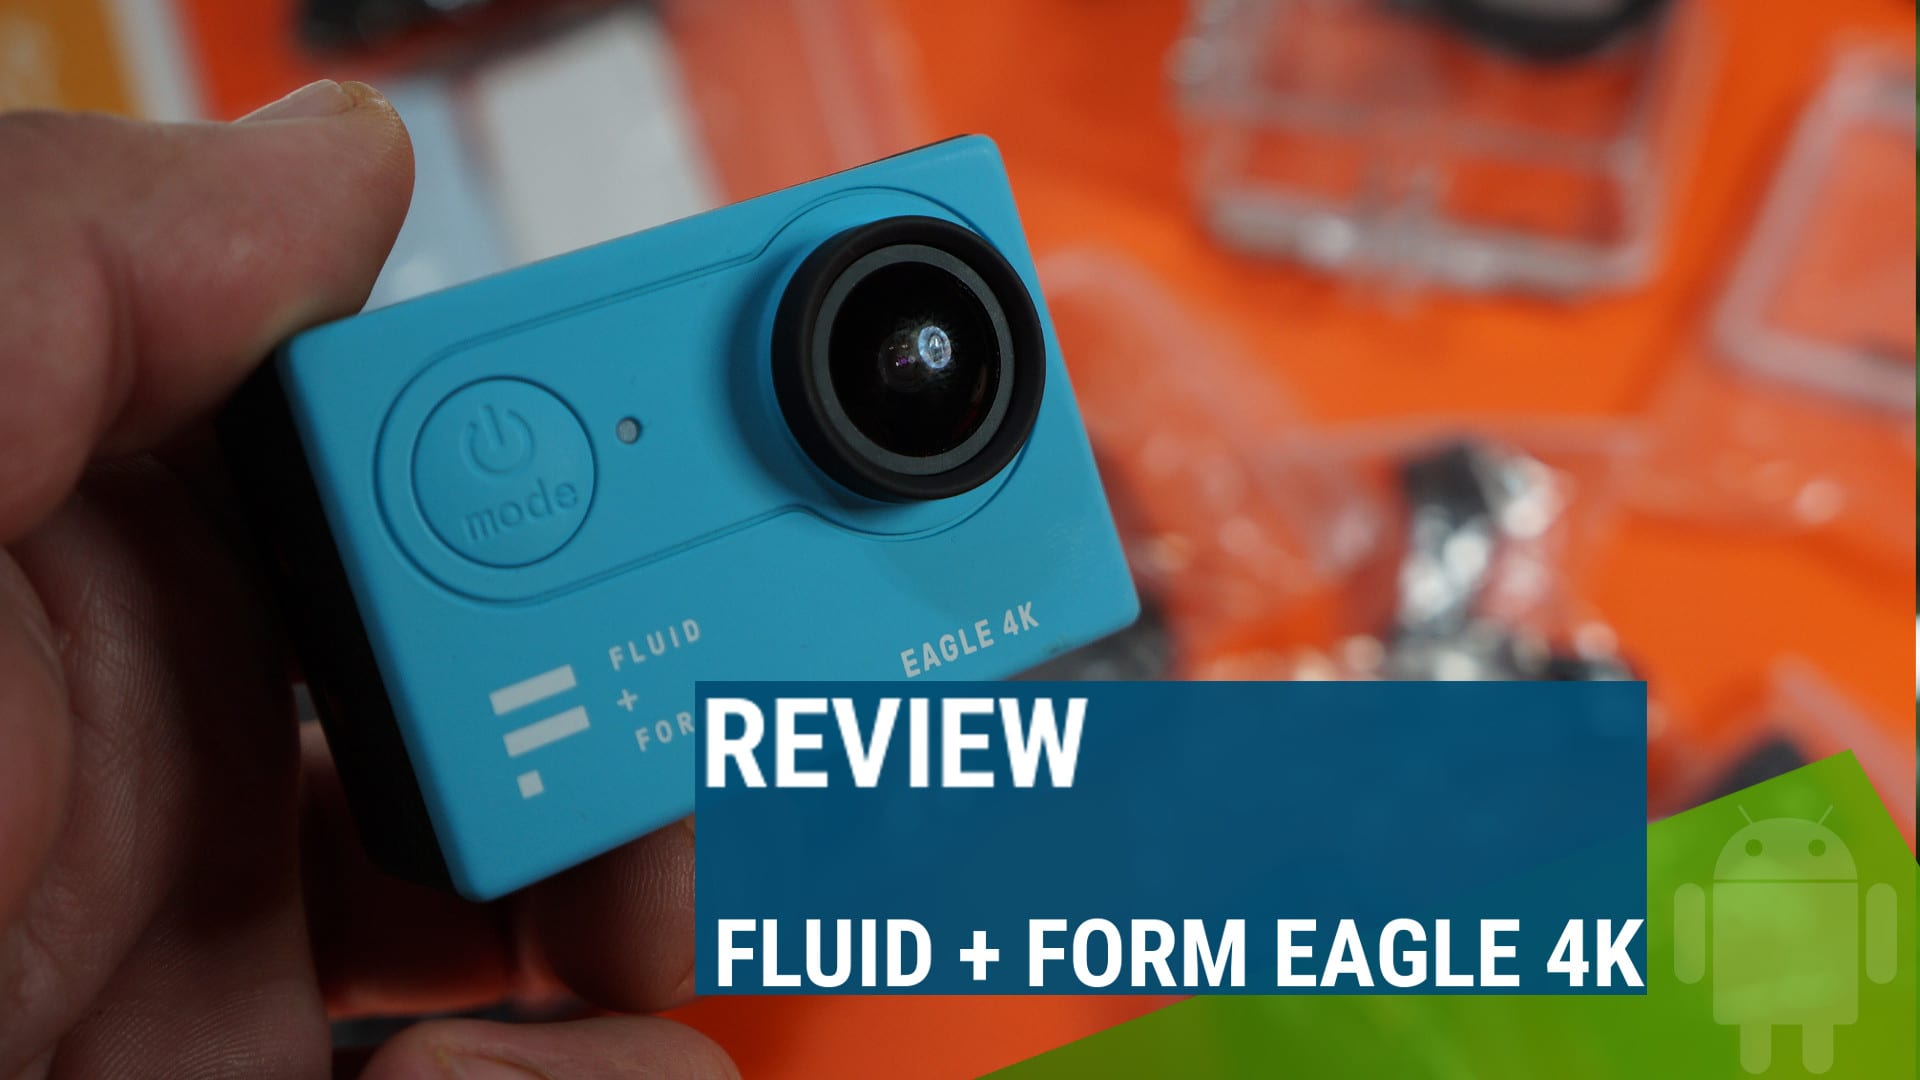 Fluid + Form Eagle 4K